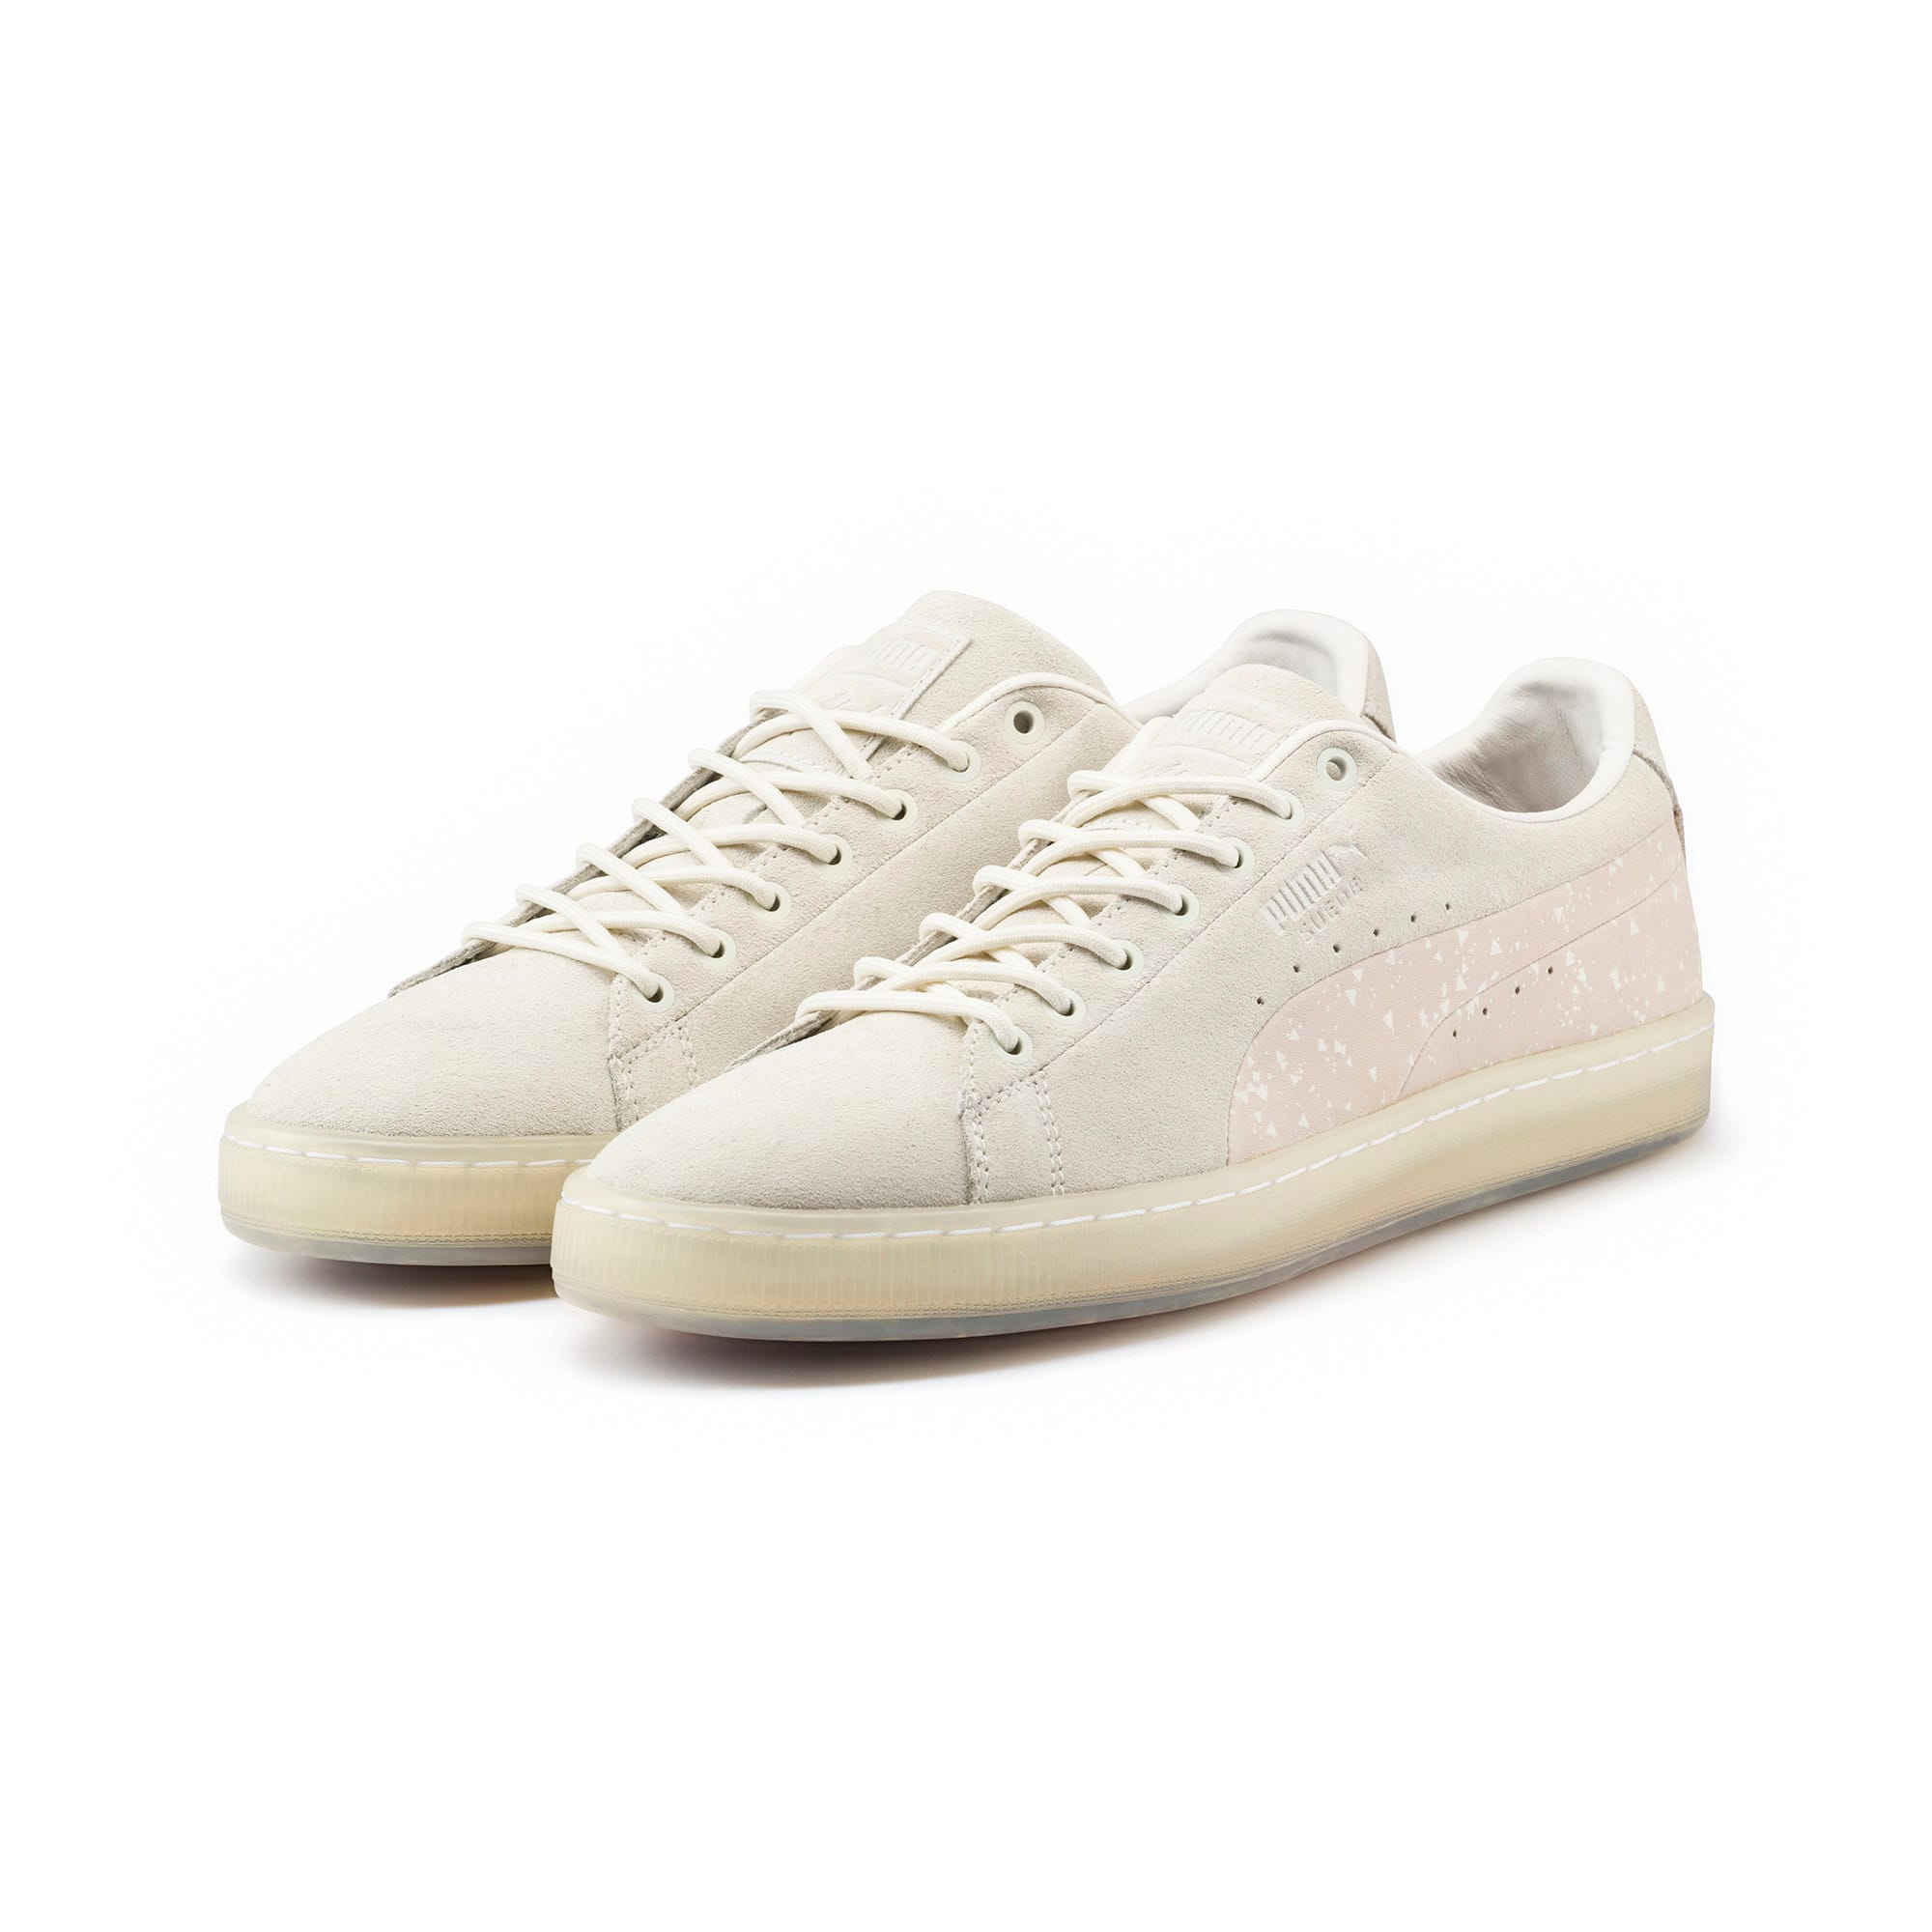 Thumbnail 2 of PUMA x NATUREL Suede Sneakers, Whisper White-Almond, medium